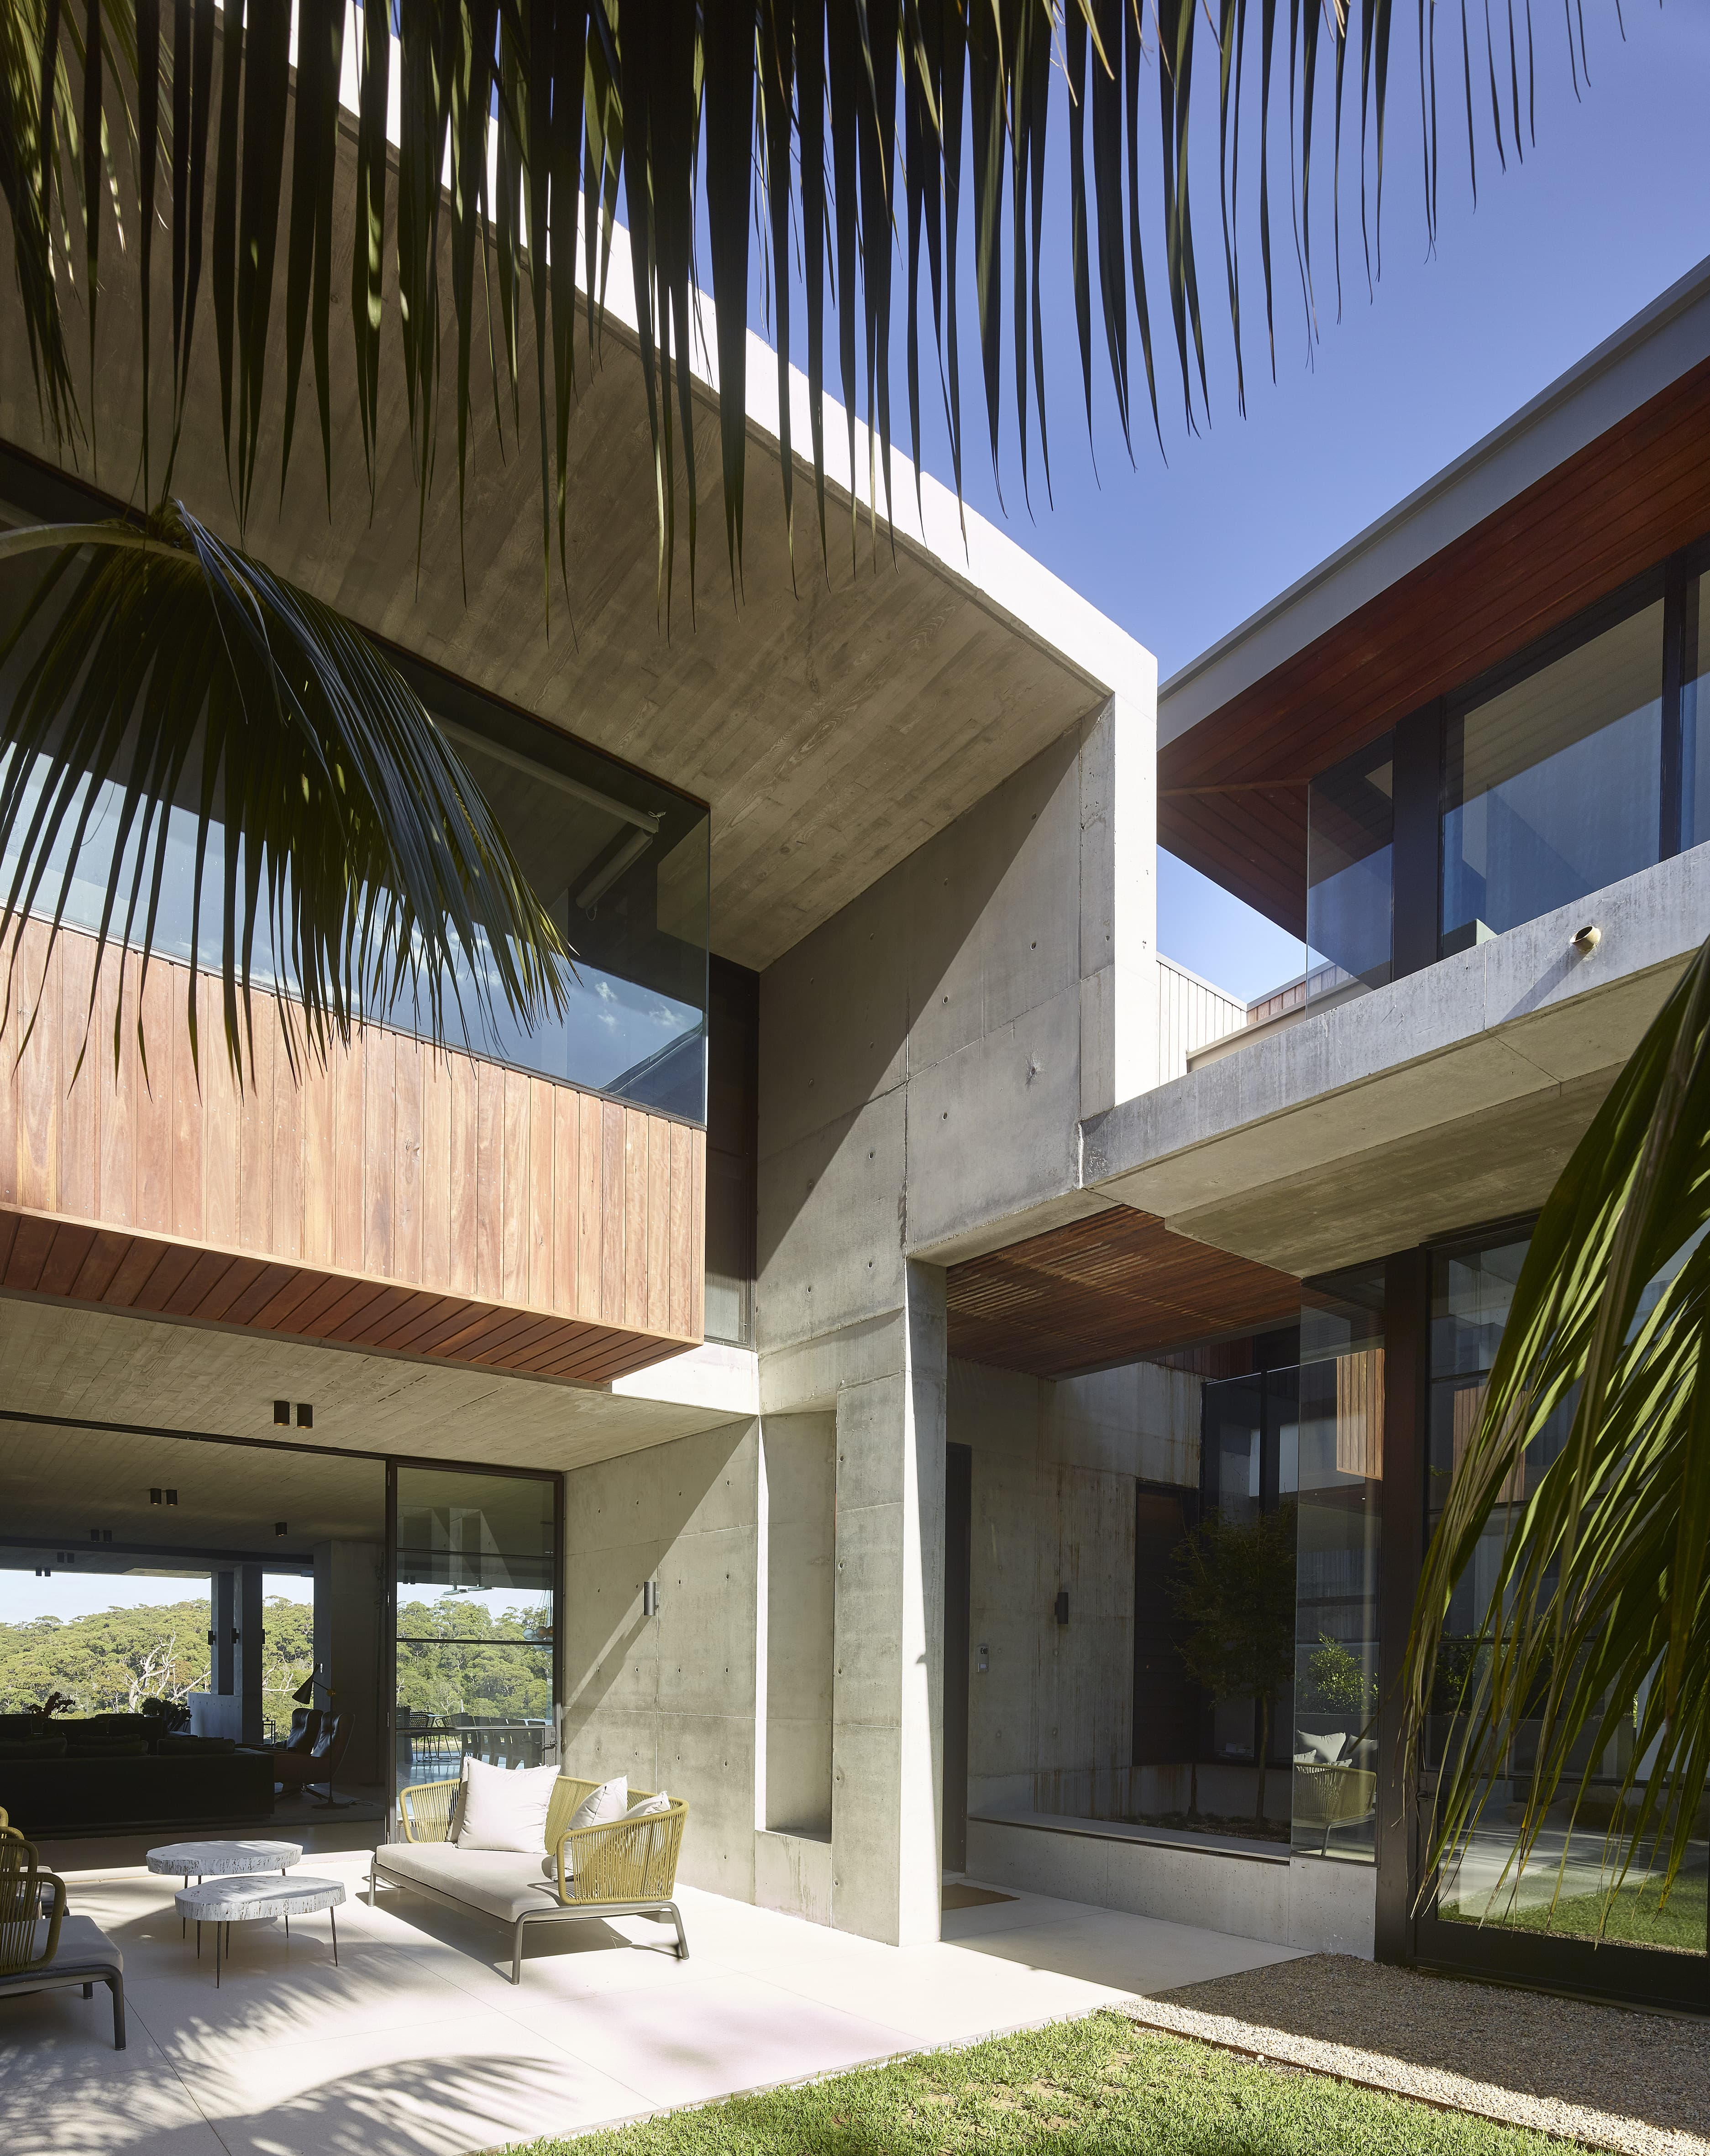 Gallery Of Mosman House By Shaun Lockyer Architects Local Australian Design And Interiors Mosman, Nsw Image 3 Min